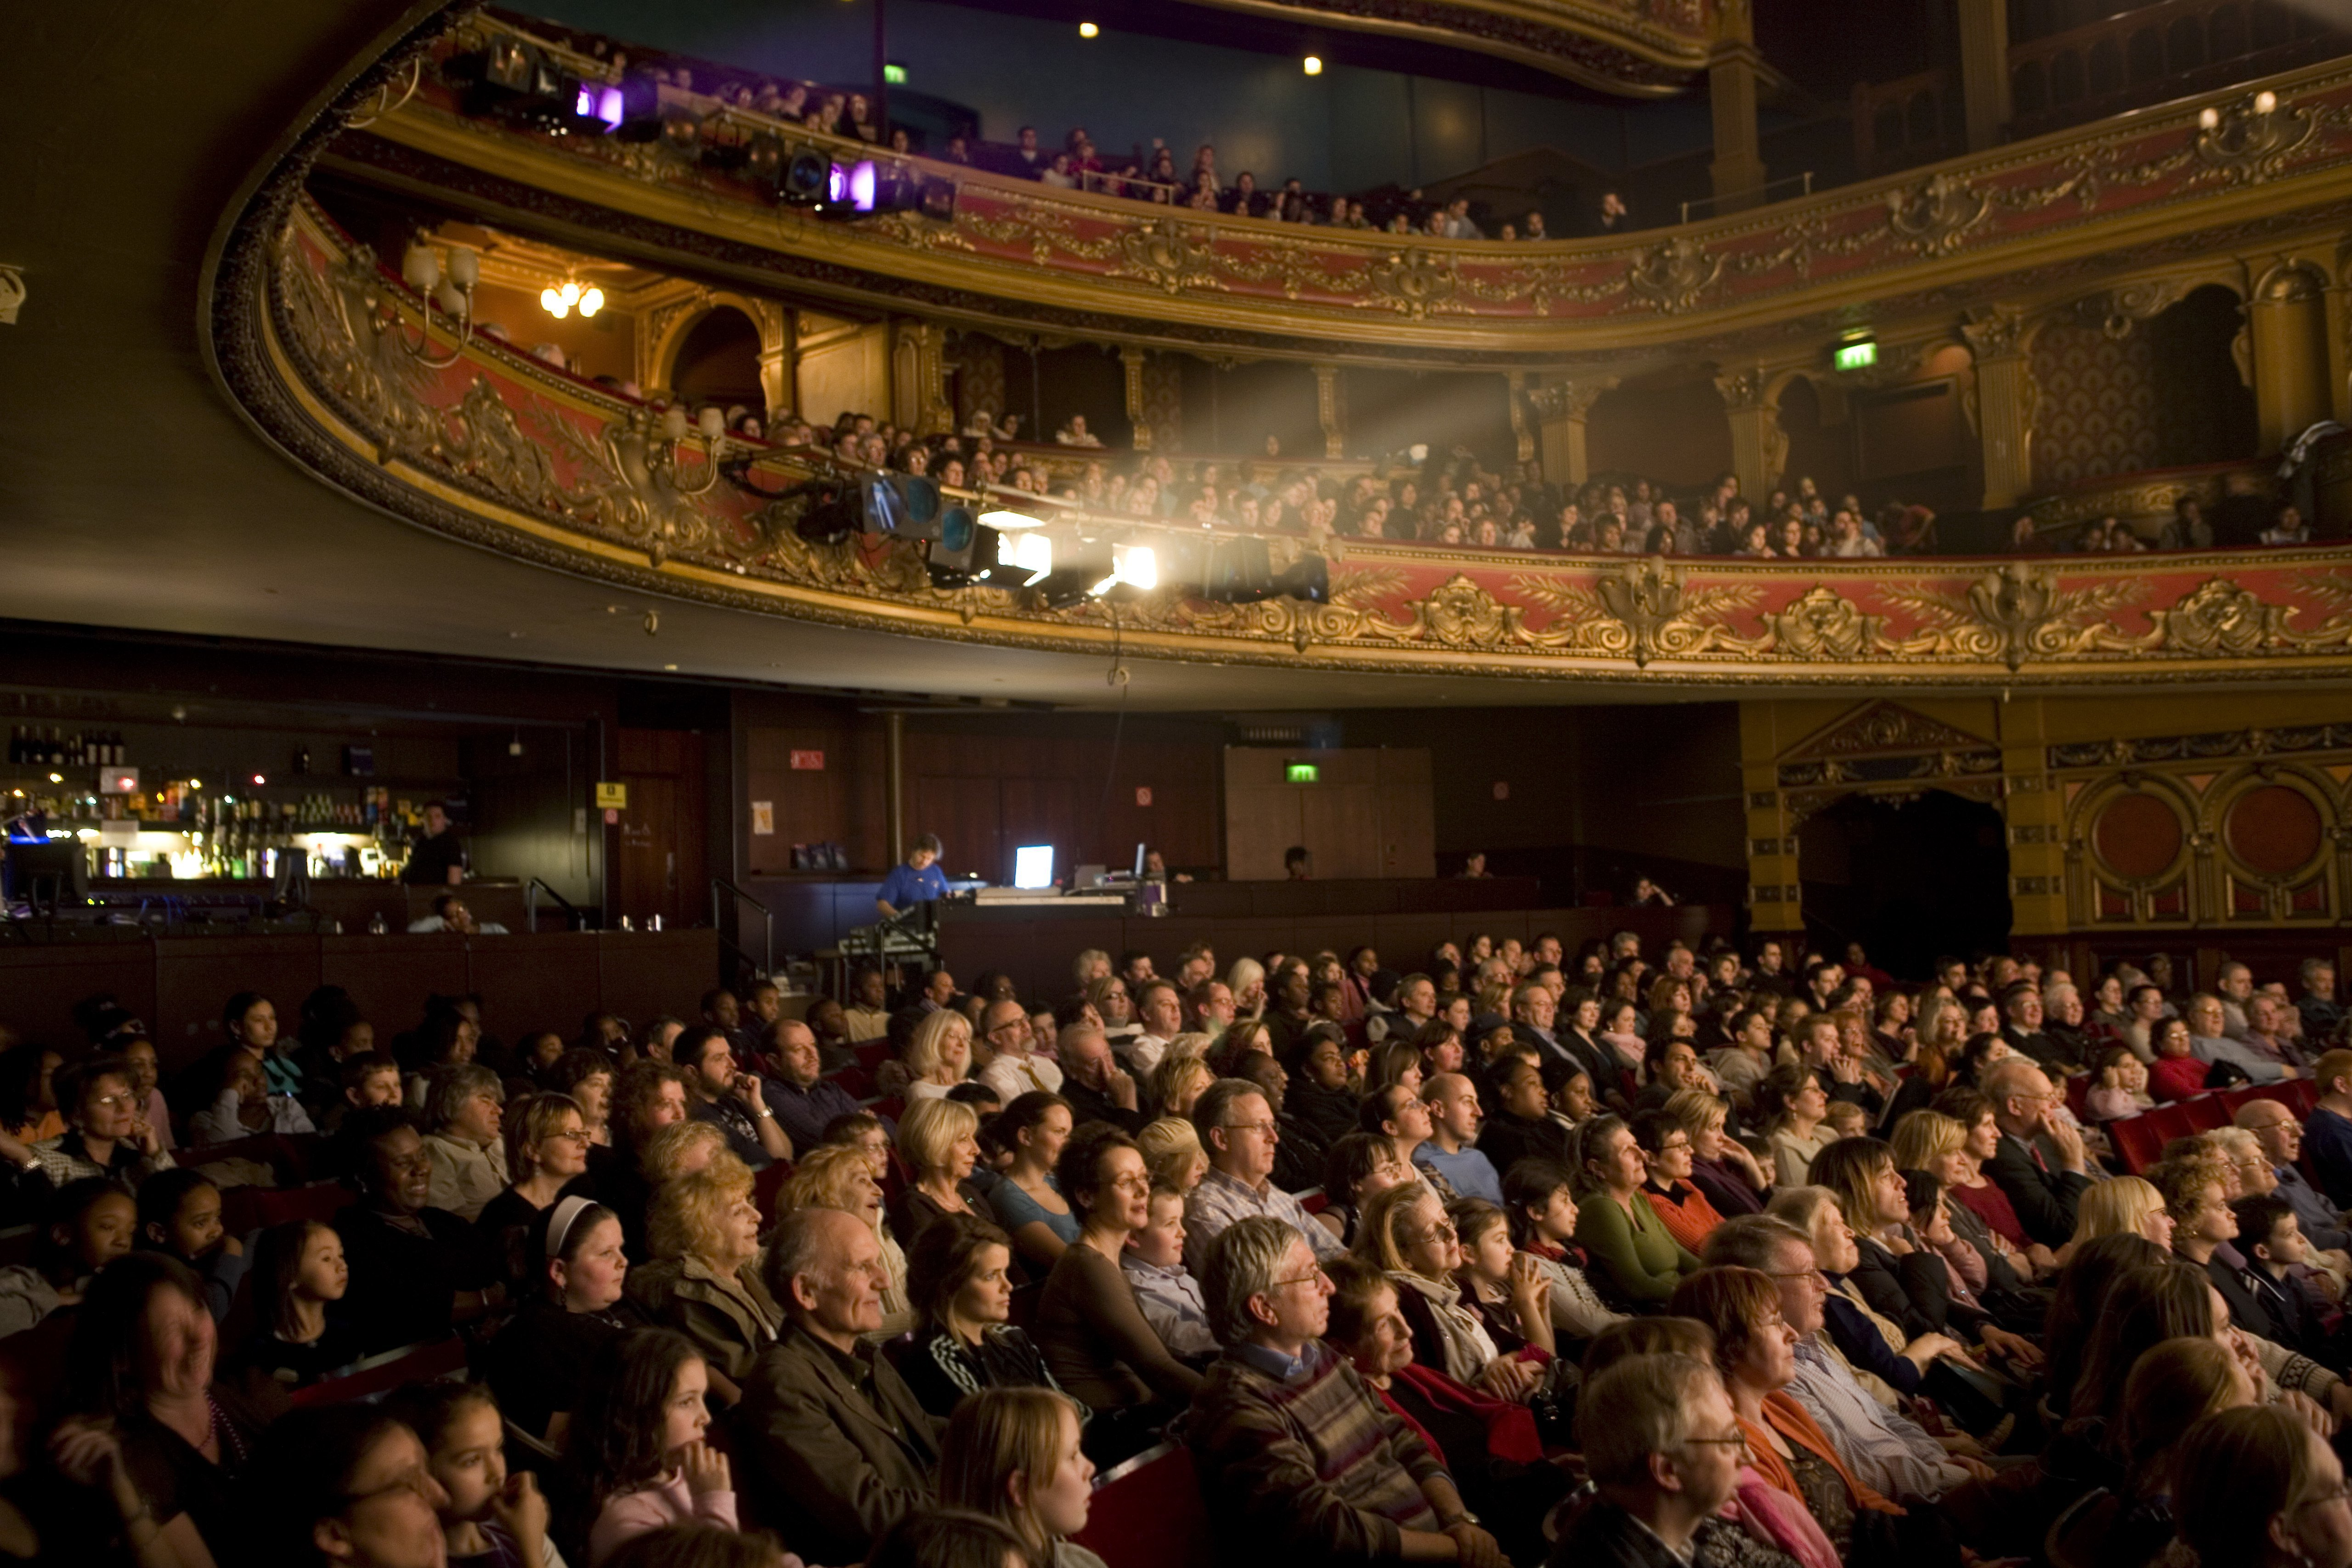 A captivated audience watches a performance at the Hackney Empire Theatre| Photo: Getty Images